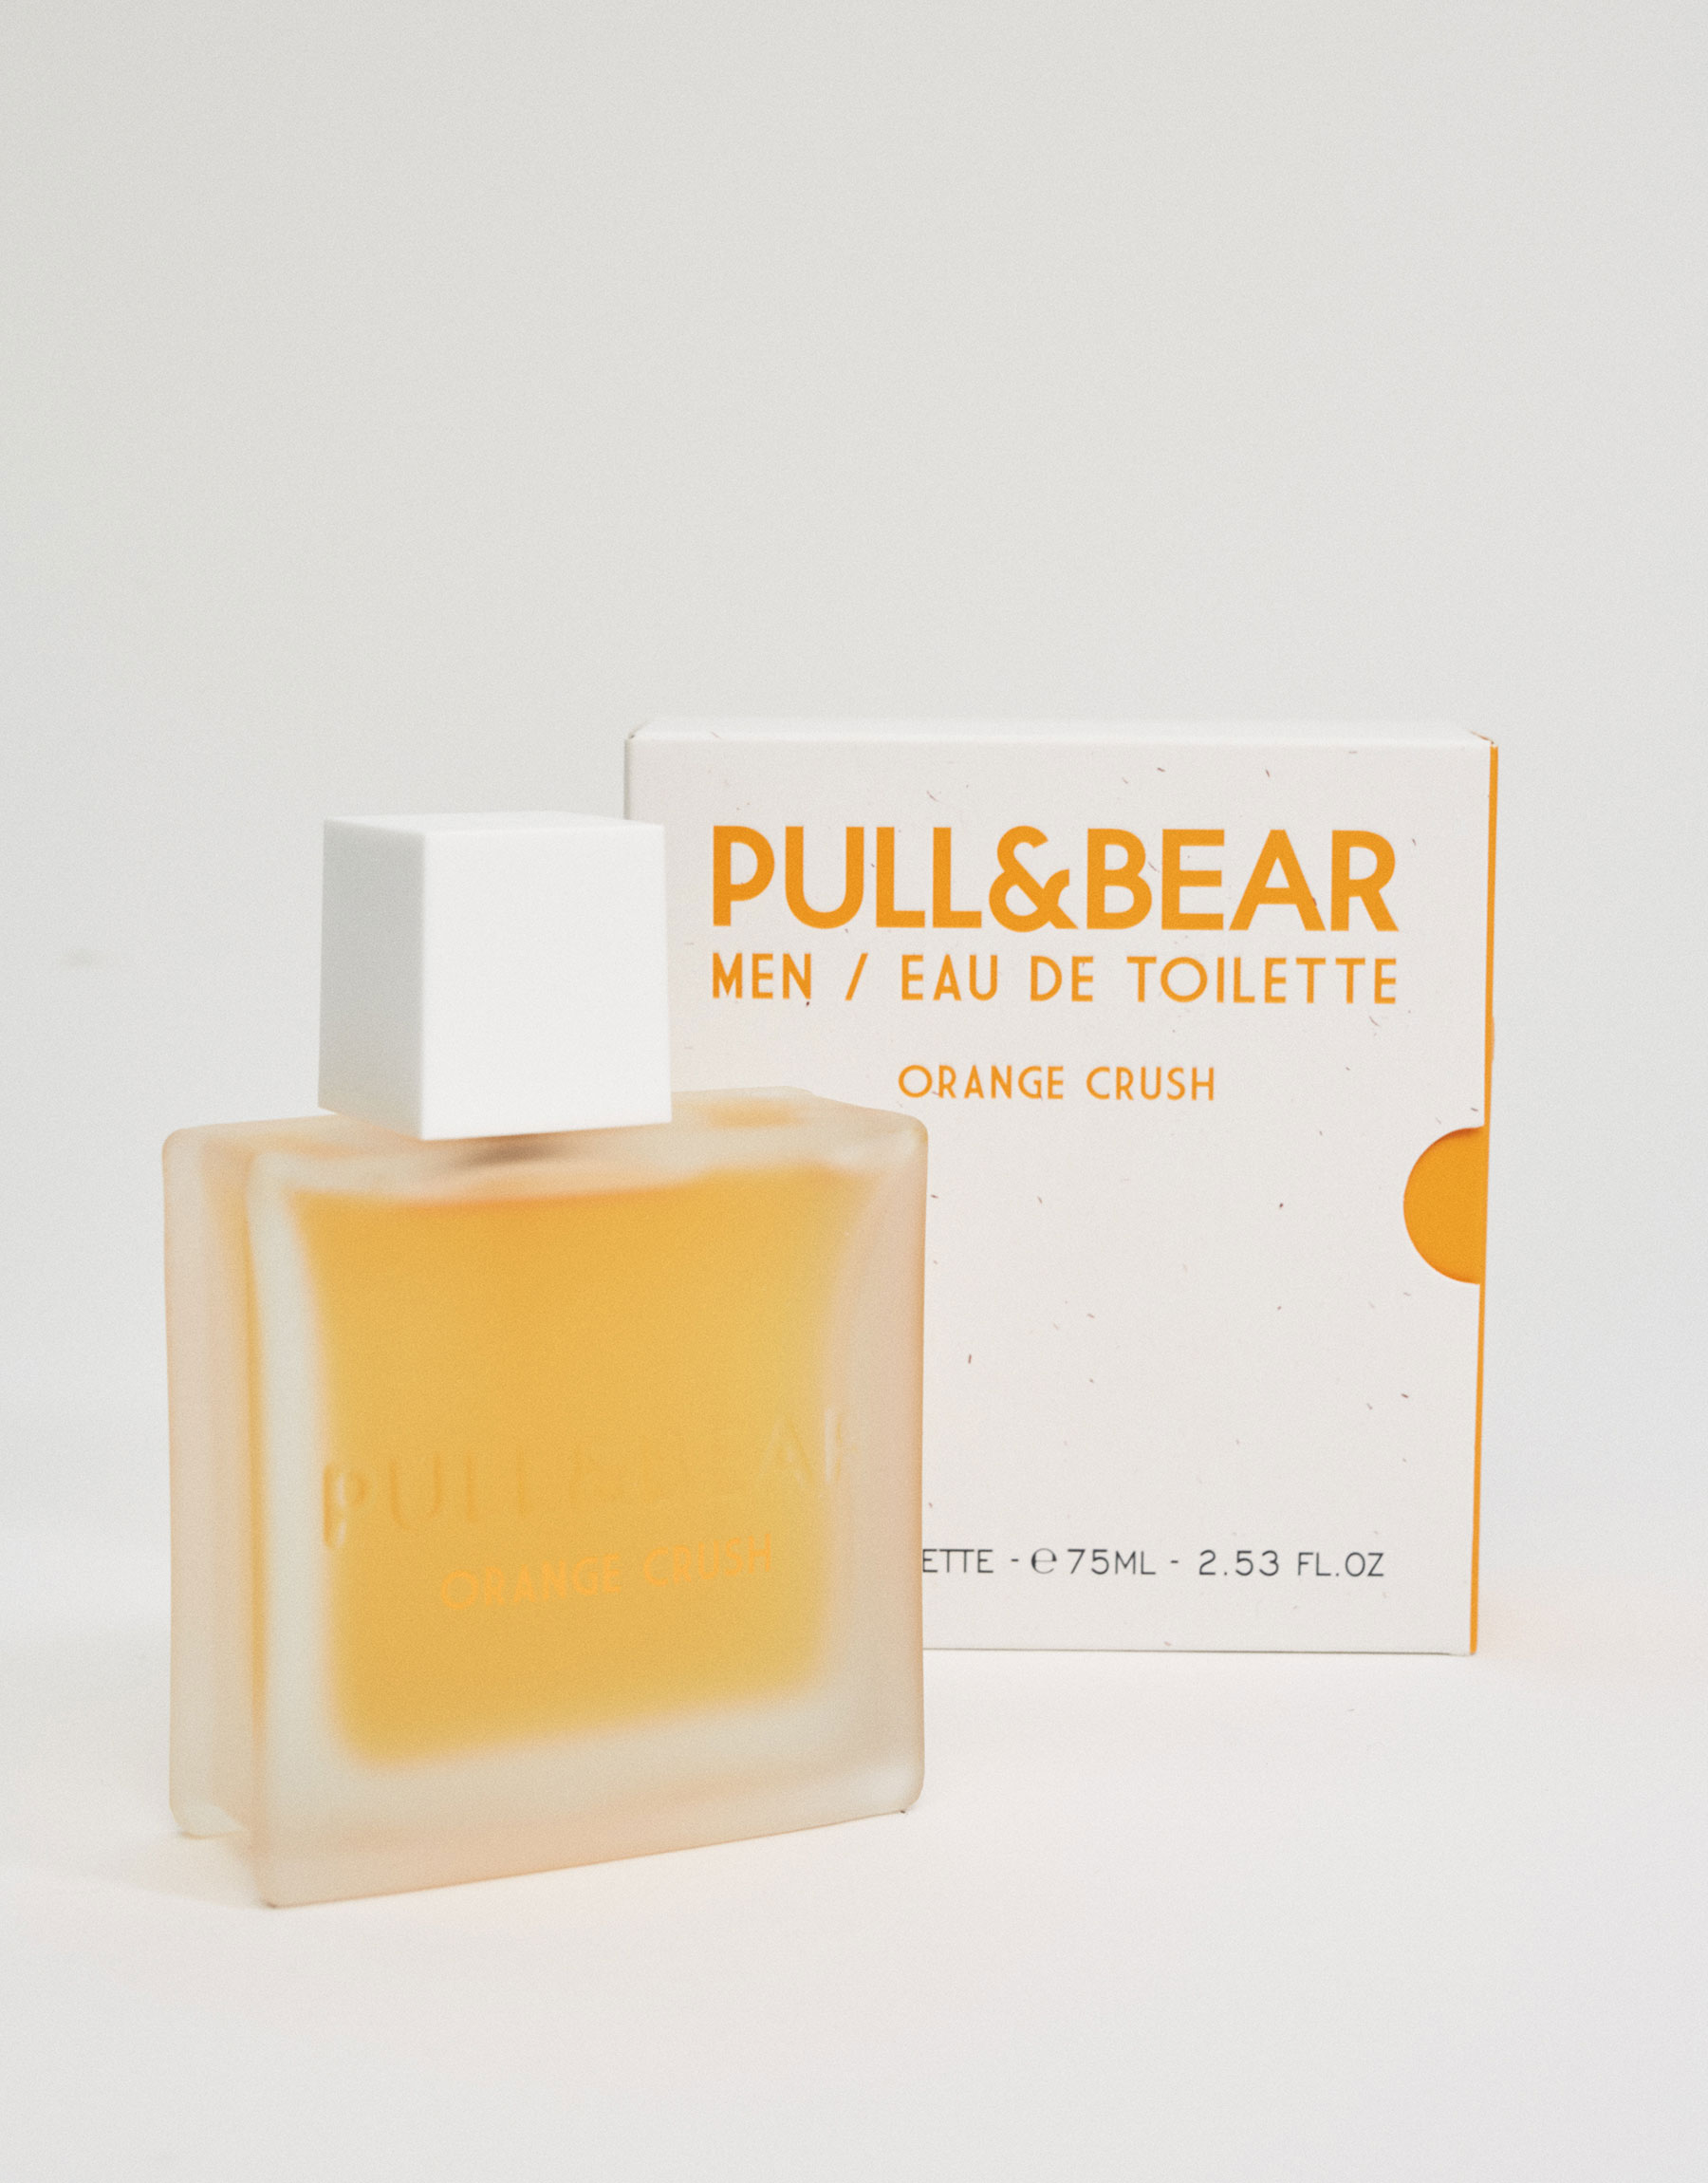 Pull & bear orange crush 75 ml eau de toilette